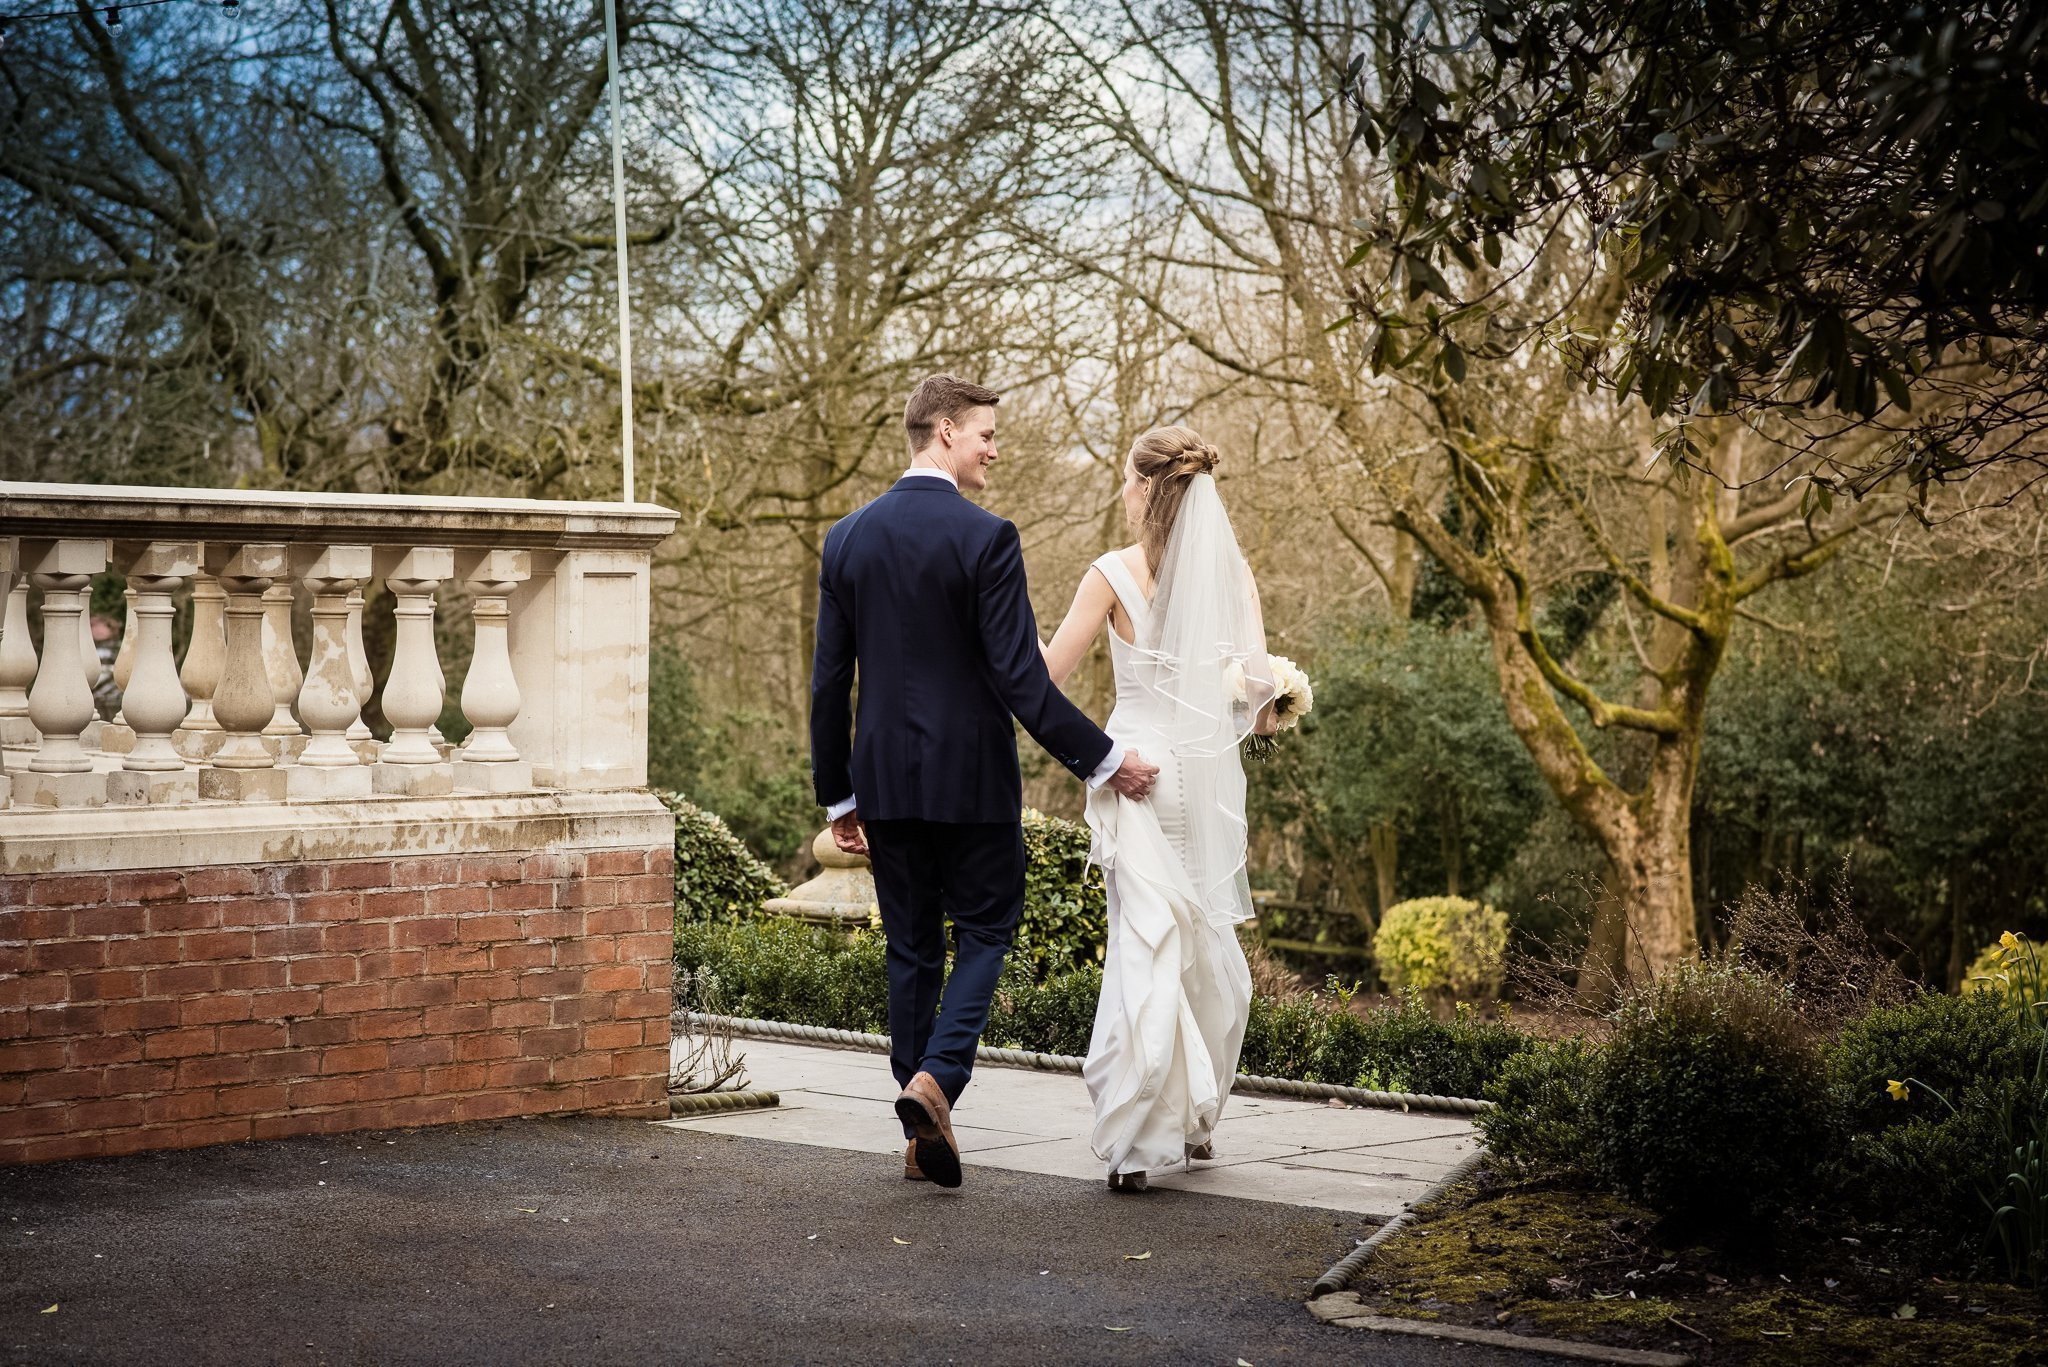 Liverpool-wedding-photographer-514